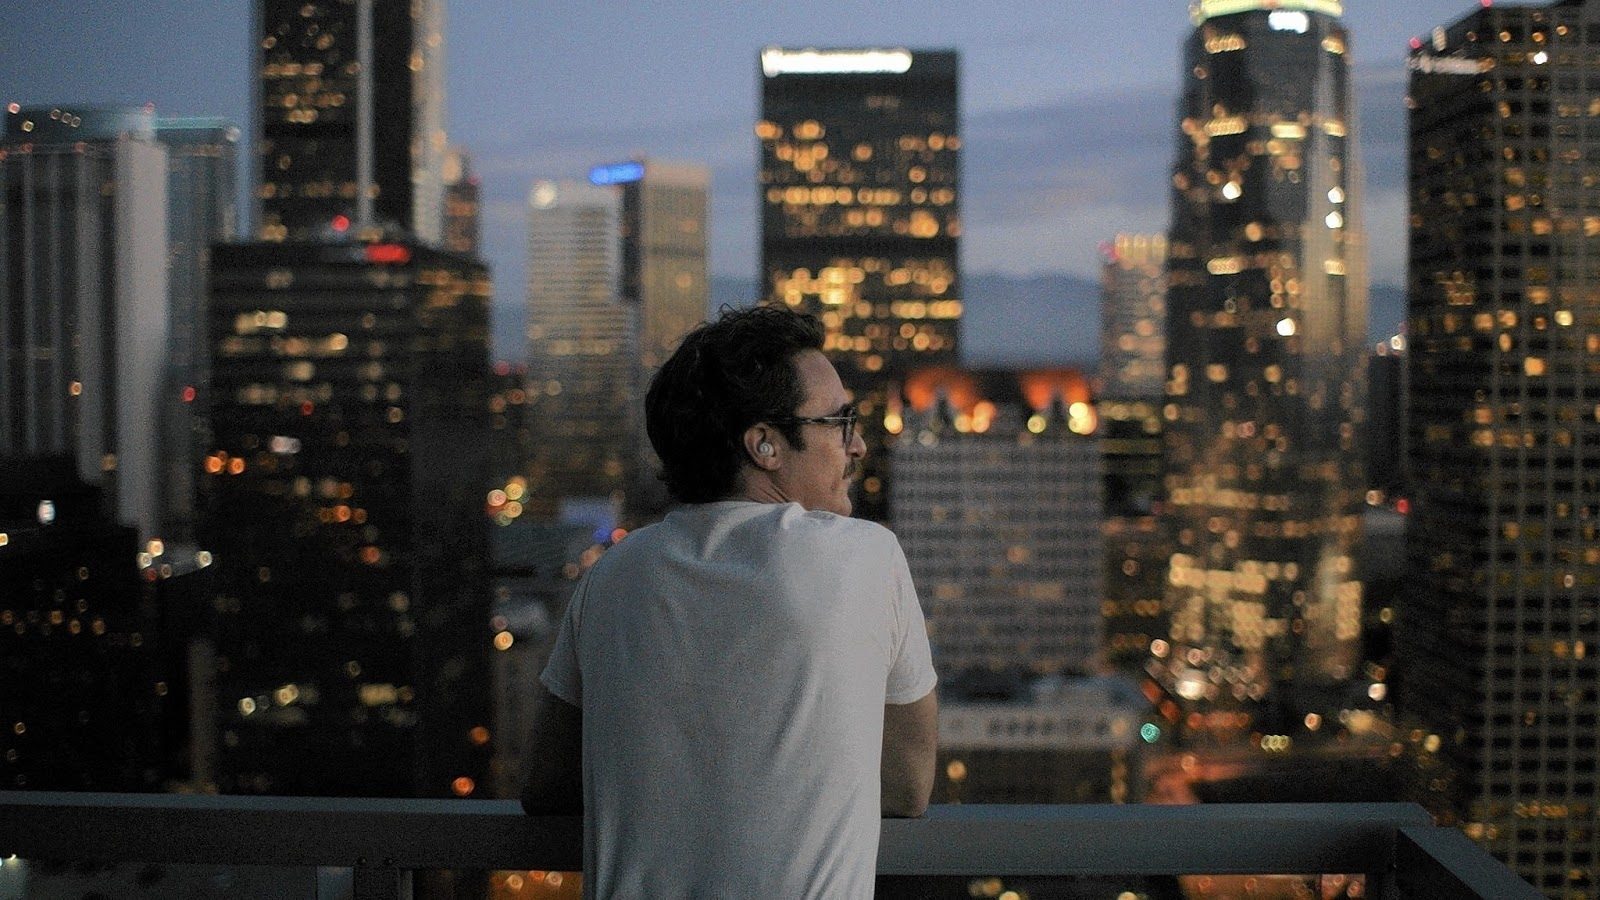 her movie wallpapers and backgrounds joaquin phoenix